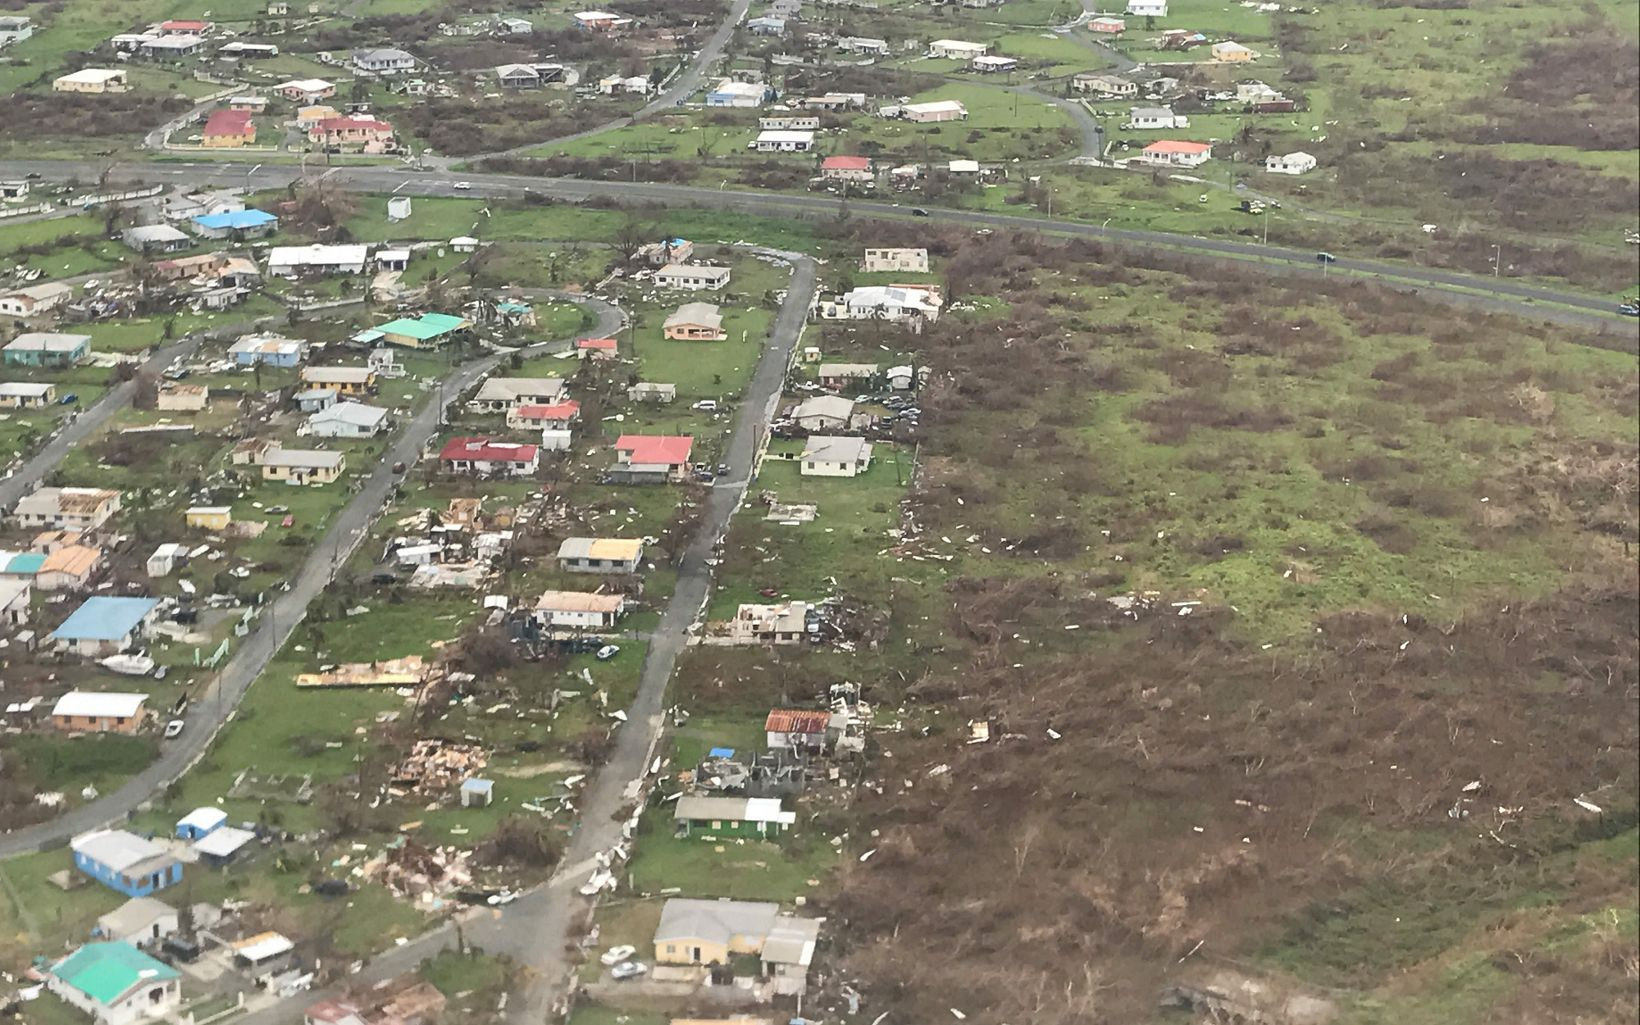 Destroyed homes St. Croix, U.S. Virgin Islands after Hurricane Maria